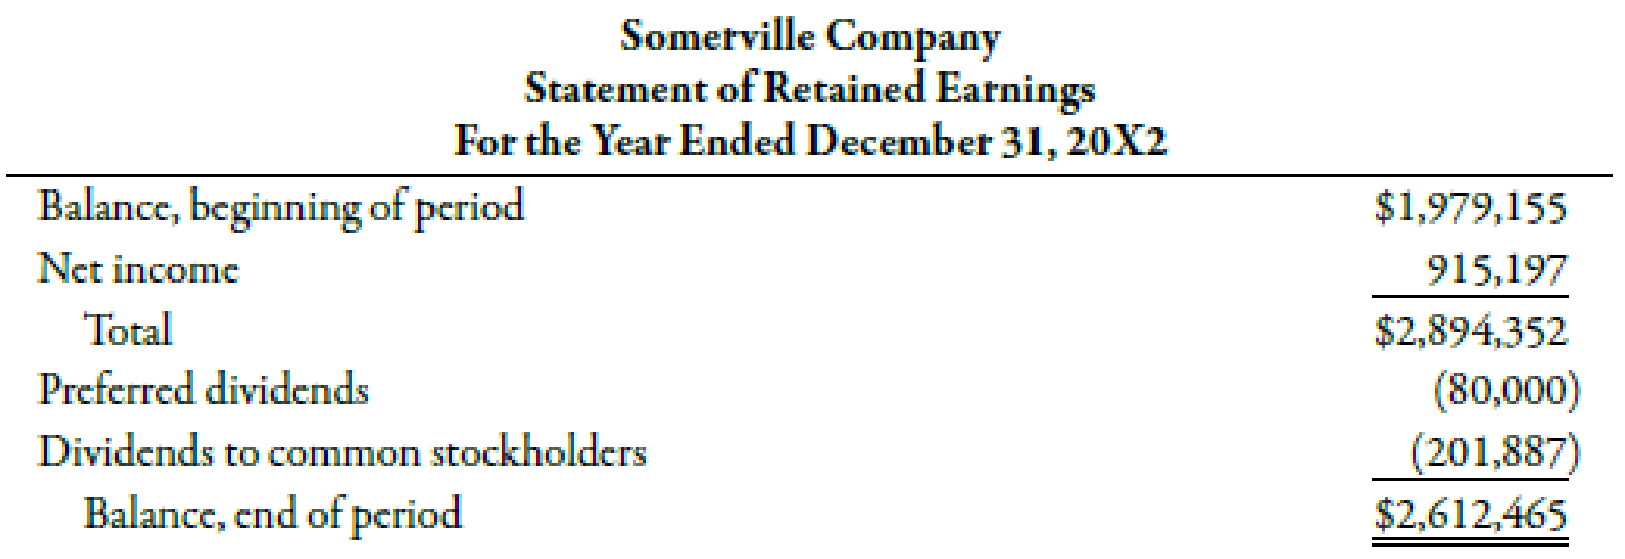 Chapter 15, Problem 22BEA, The income statement, statement of retained earnings, and balance sheet for Somerville Company are , example  2